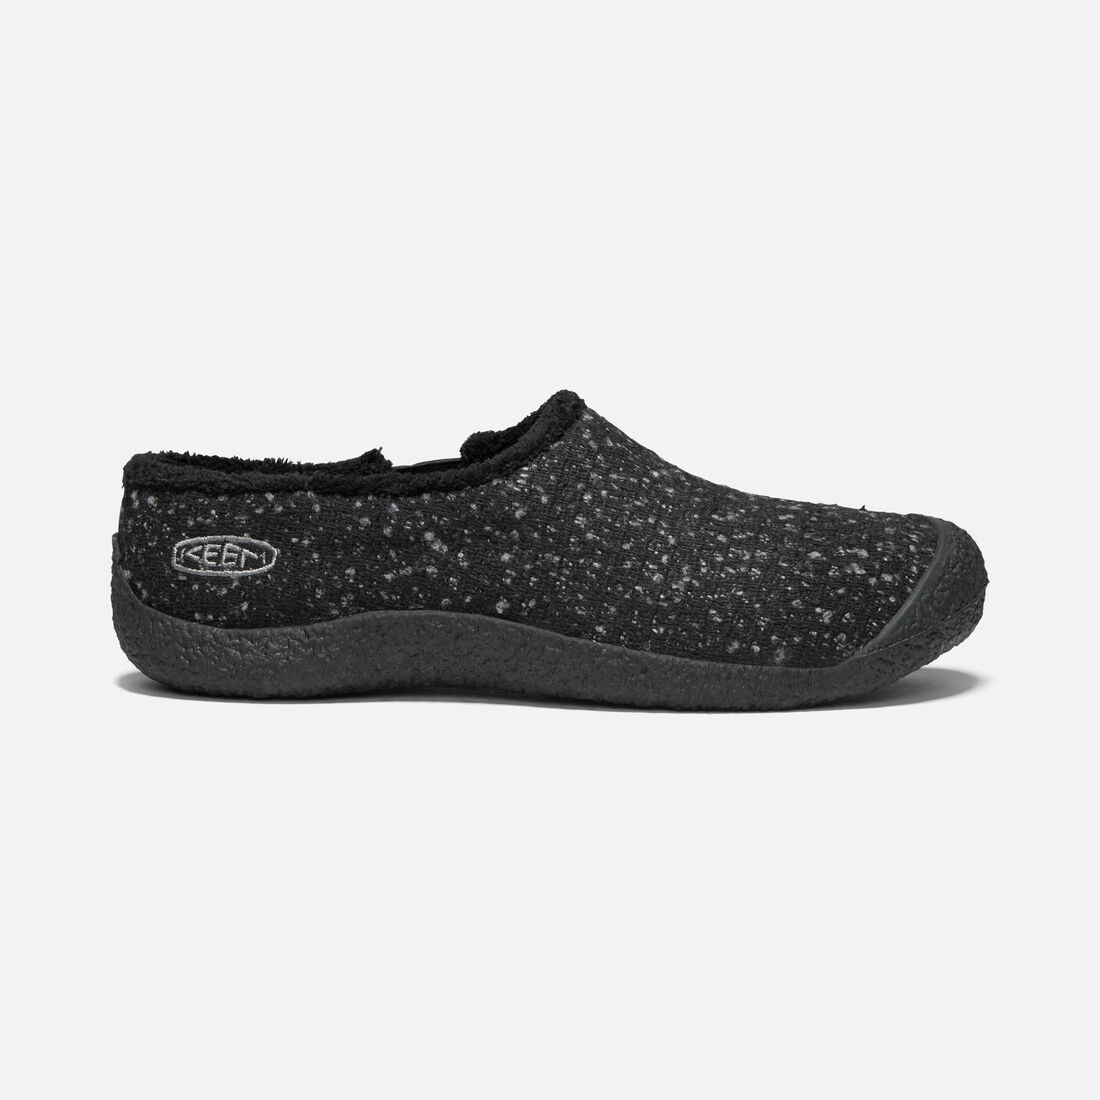 1b9a3e77a89 Women s Howser Wool Slide in BLACK KNOBBY STEEL GREY - large view.